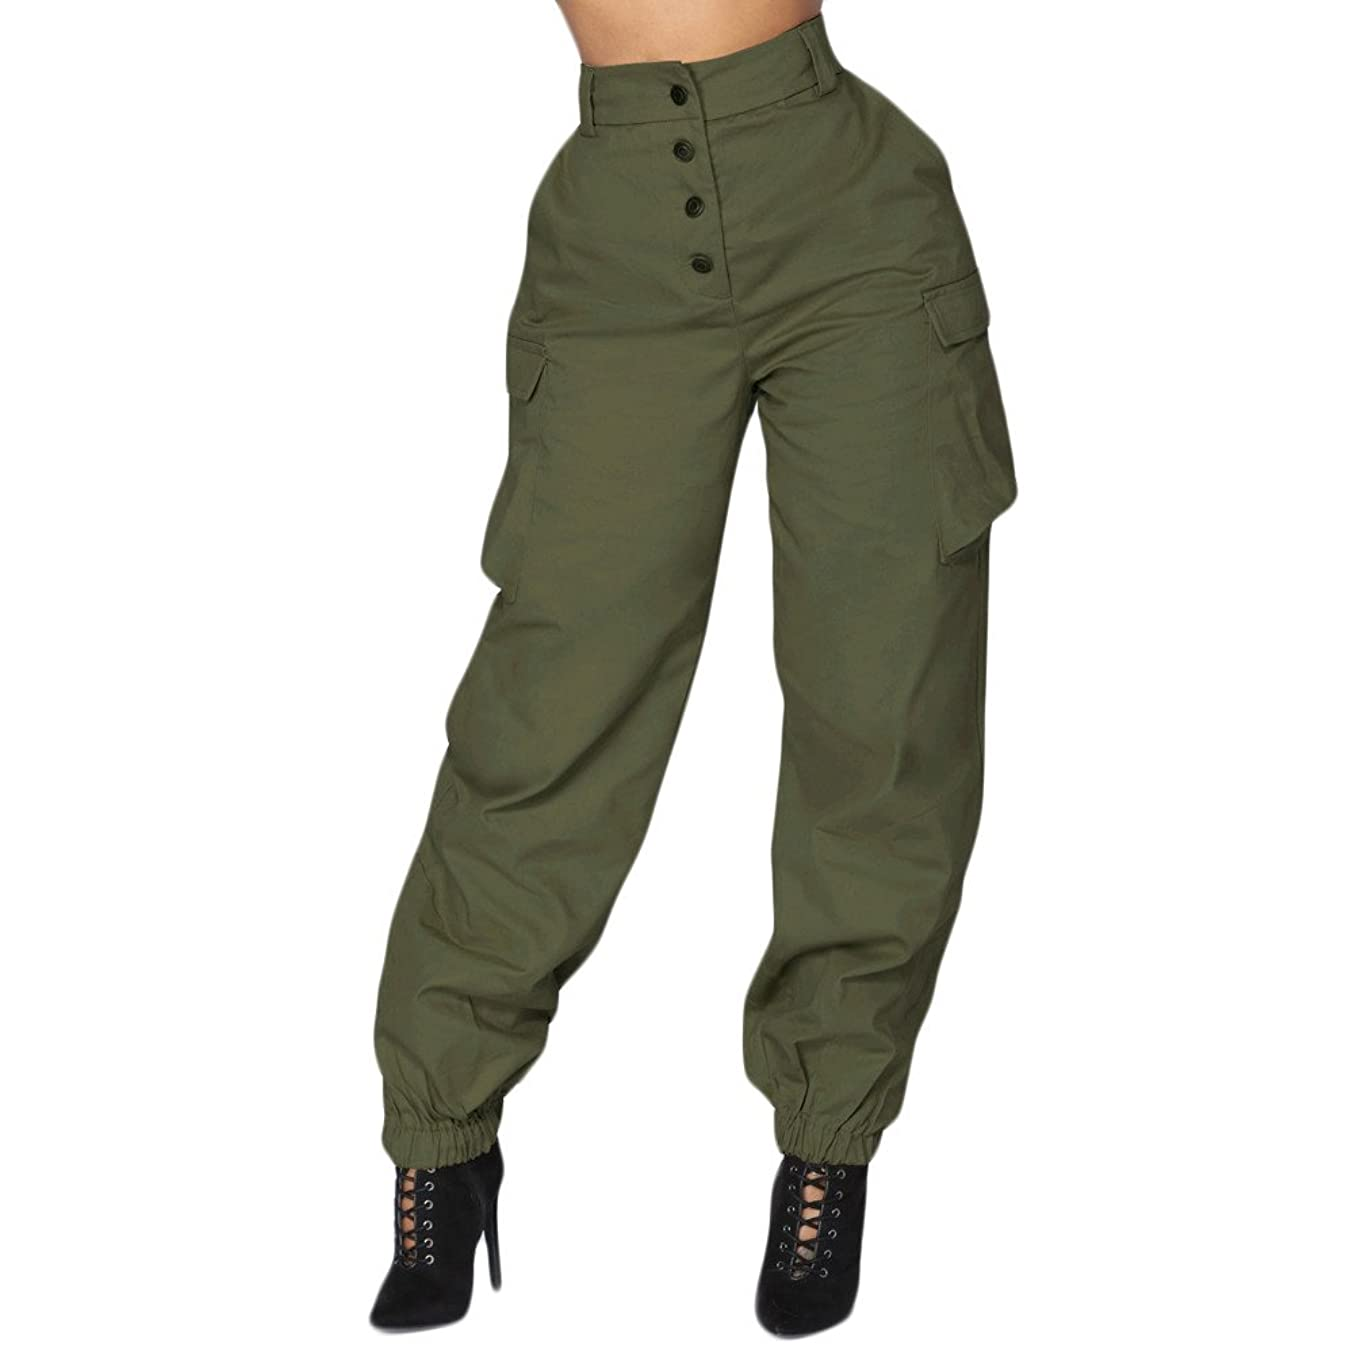 ZEFOTIM Womens Belted High Waist Trousers Ladies Party Casual Pants